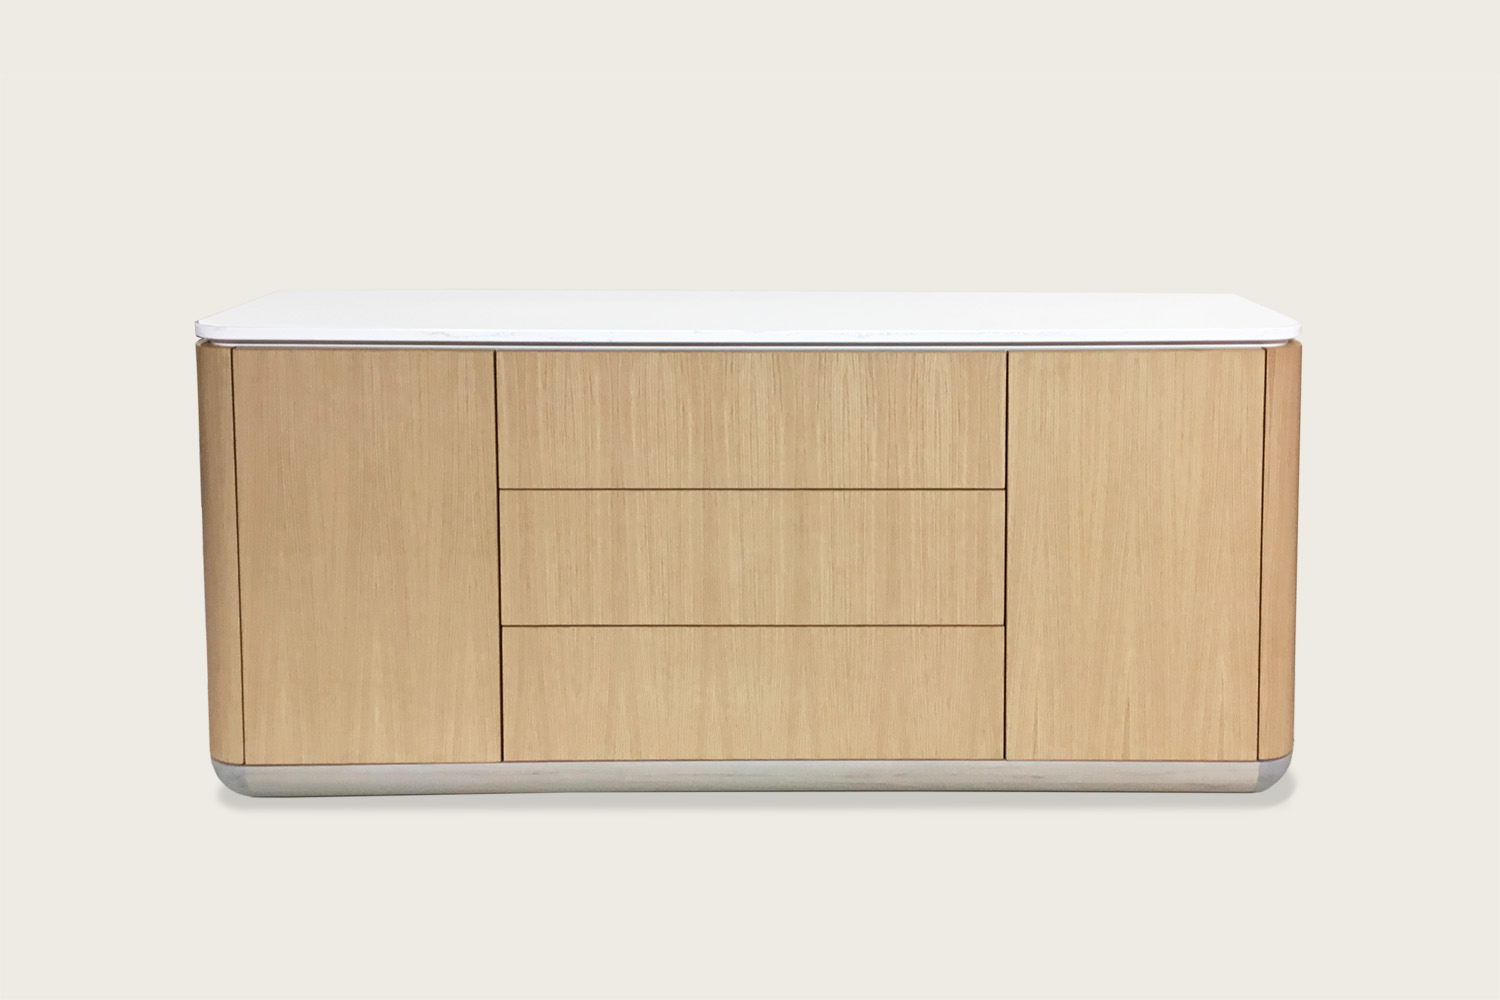 contour_wo_drawers.jpg